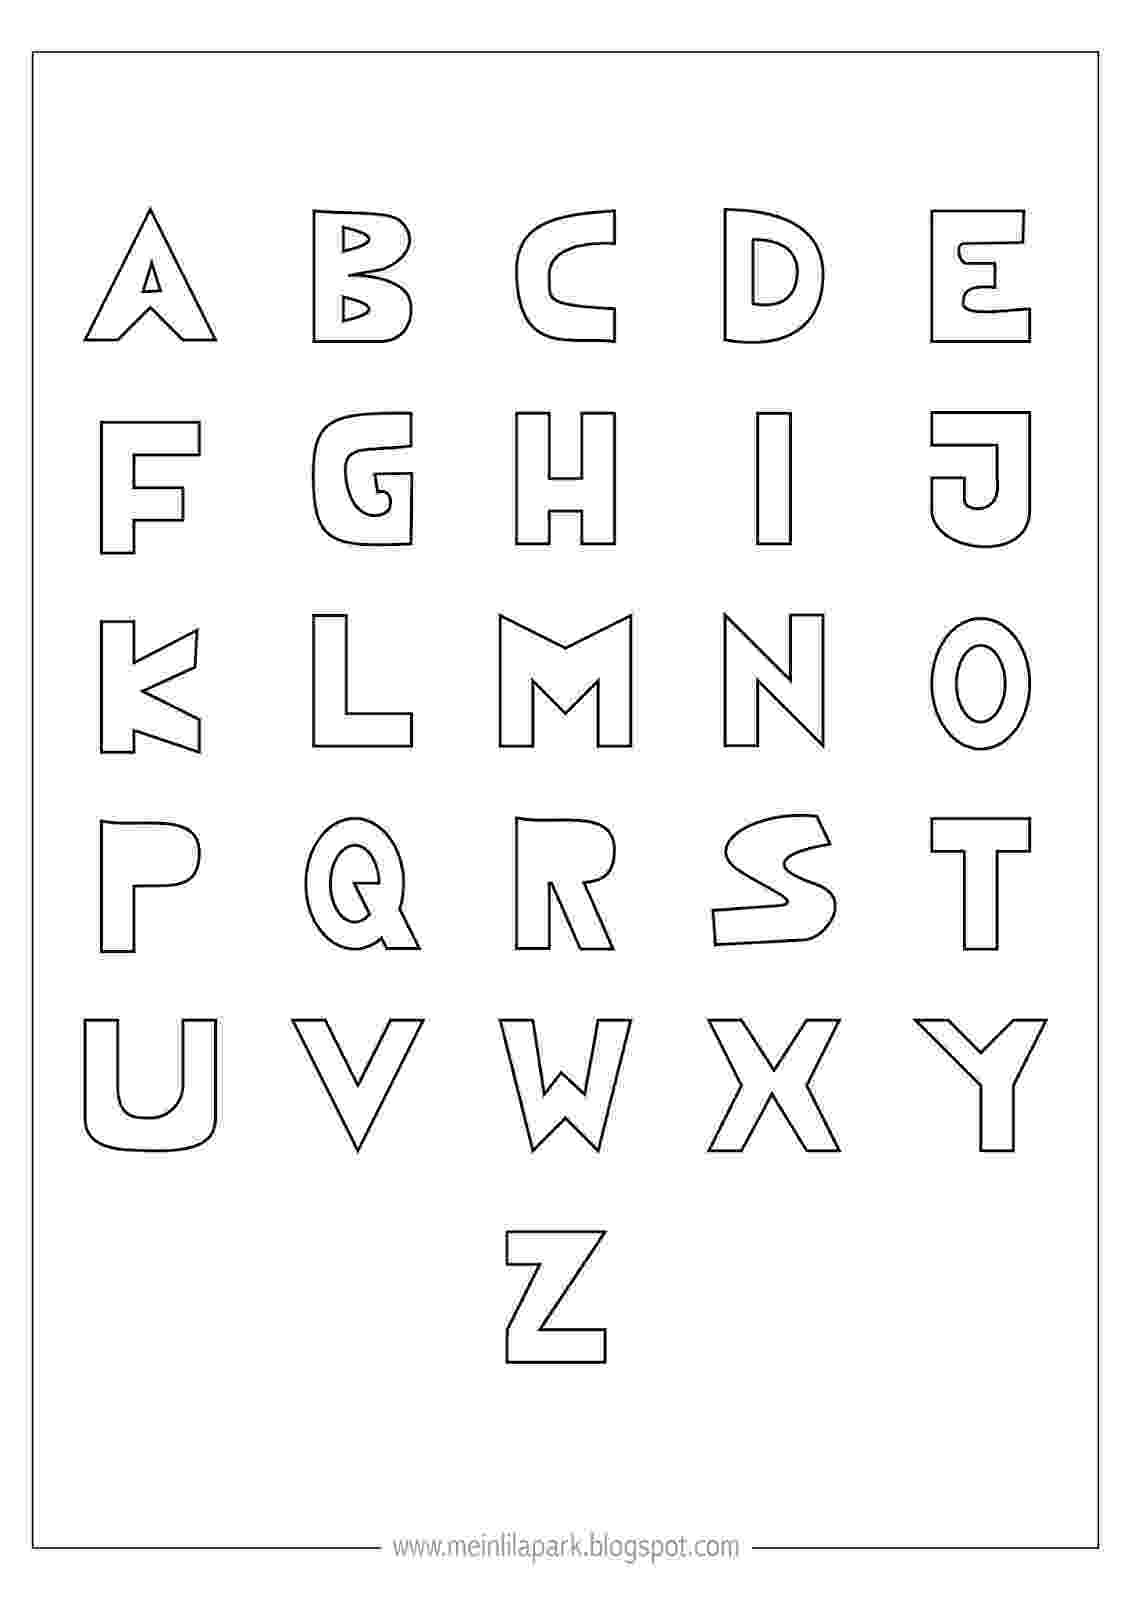 printable coloring alphabet letters free printable alphabet coloring pages for kids best coloring printable letters alphabet 1 2